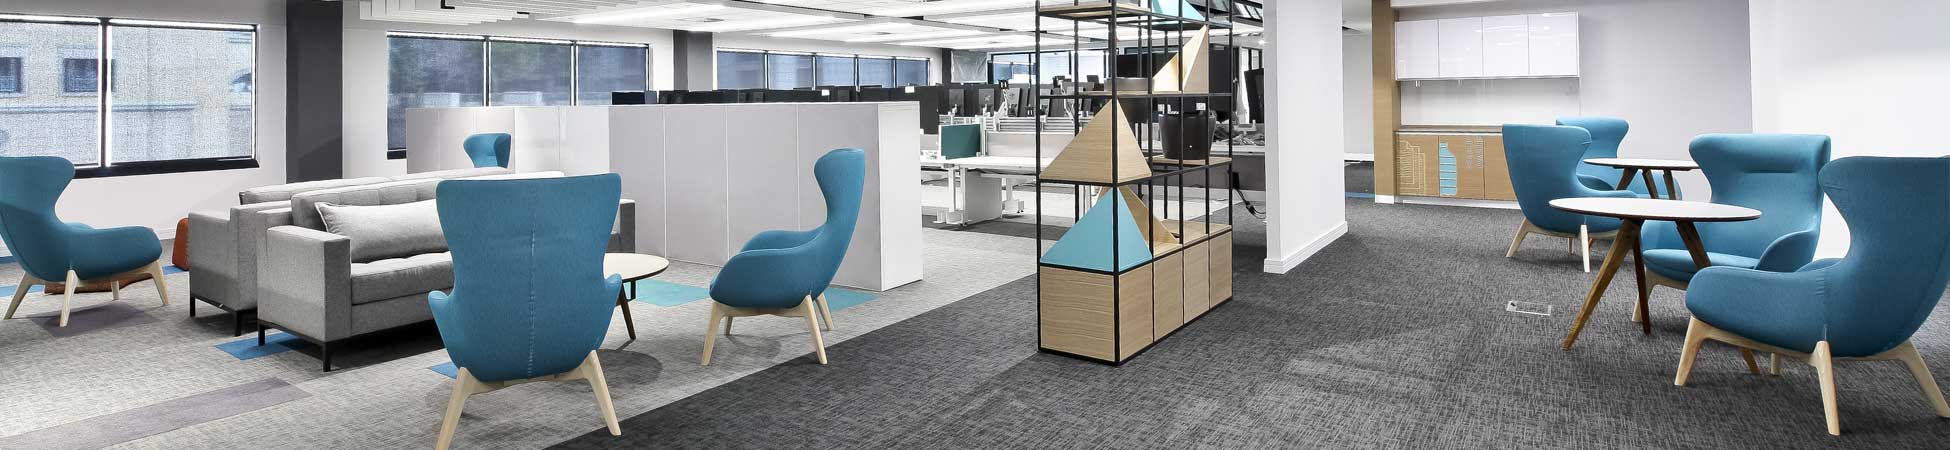 Interior Office Design and Fit-Out - CITI BANK